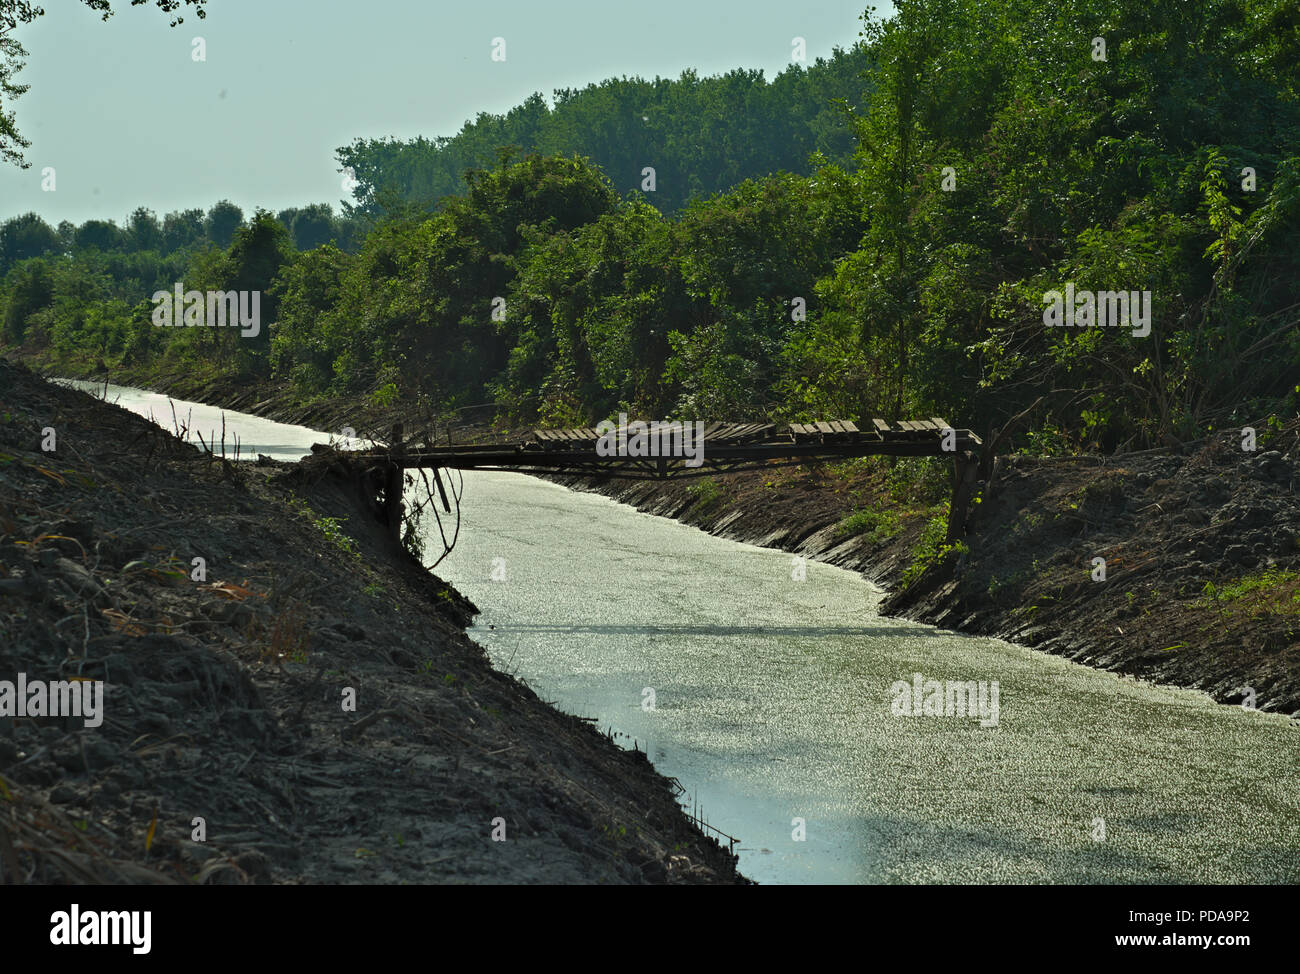 Rustic and dangerous bridge over small river - Stock Image